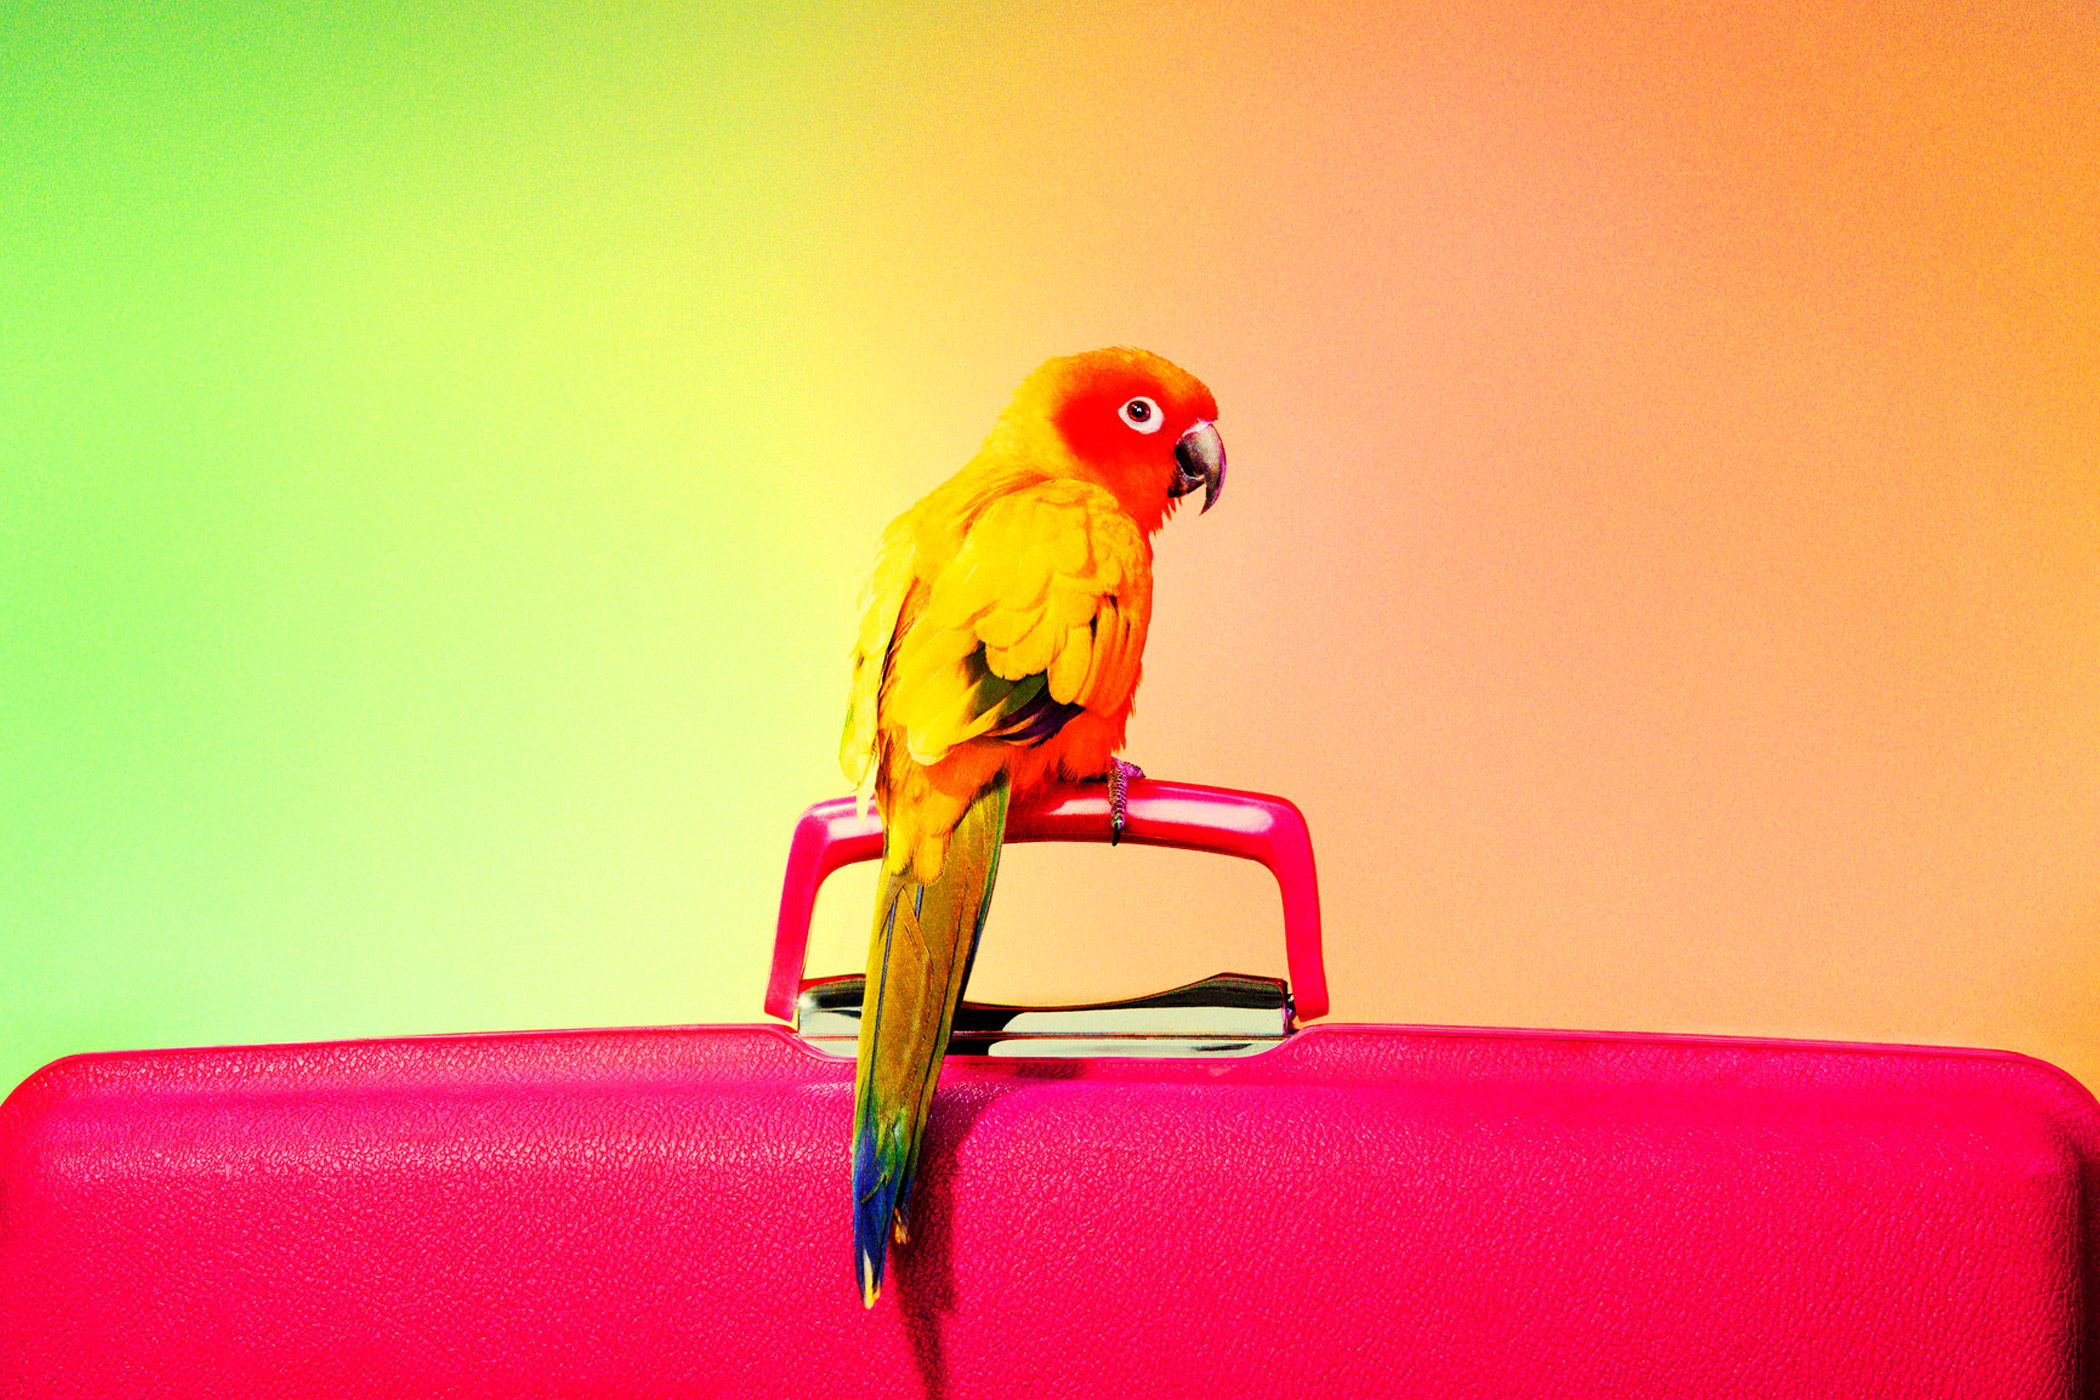 yellow and red bird on pink case